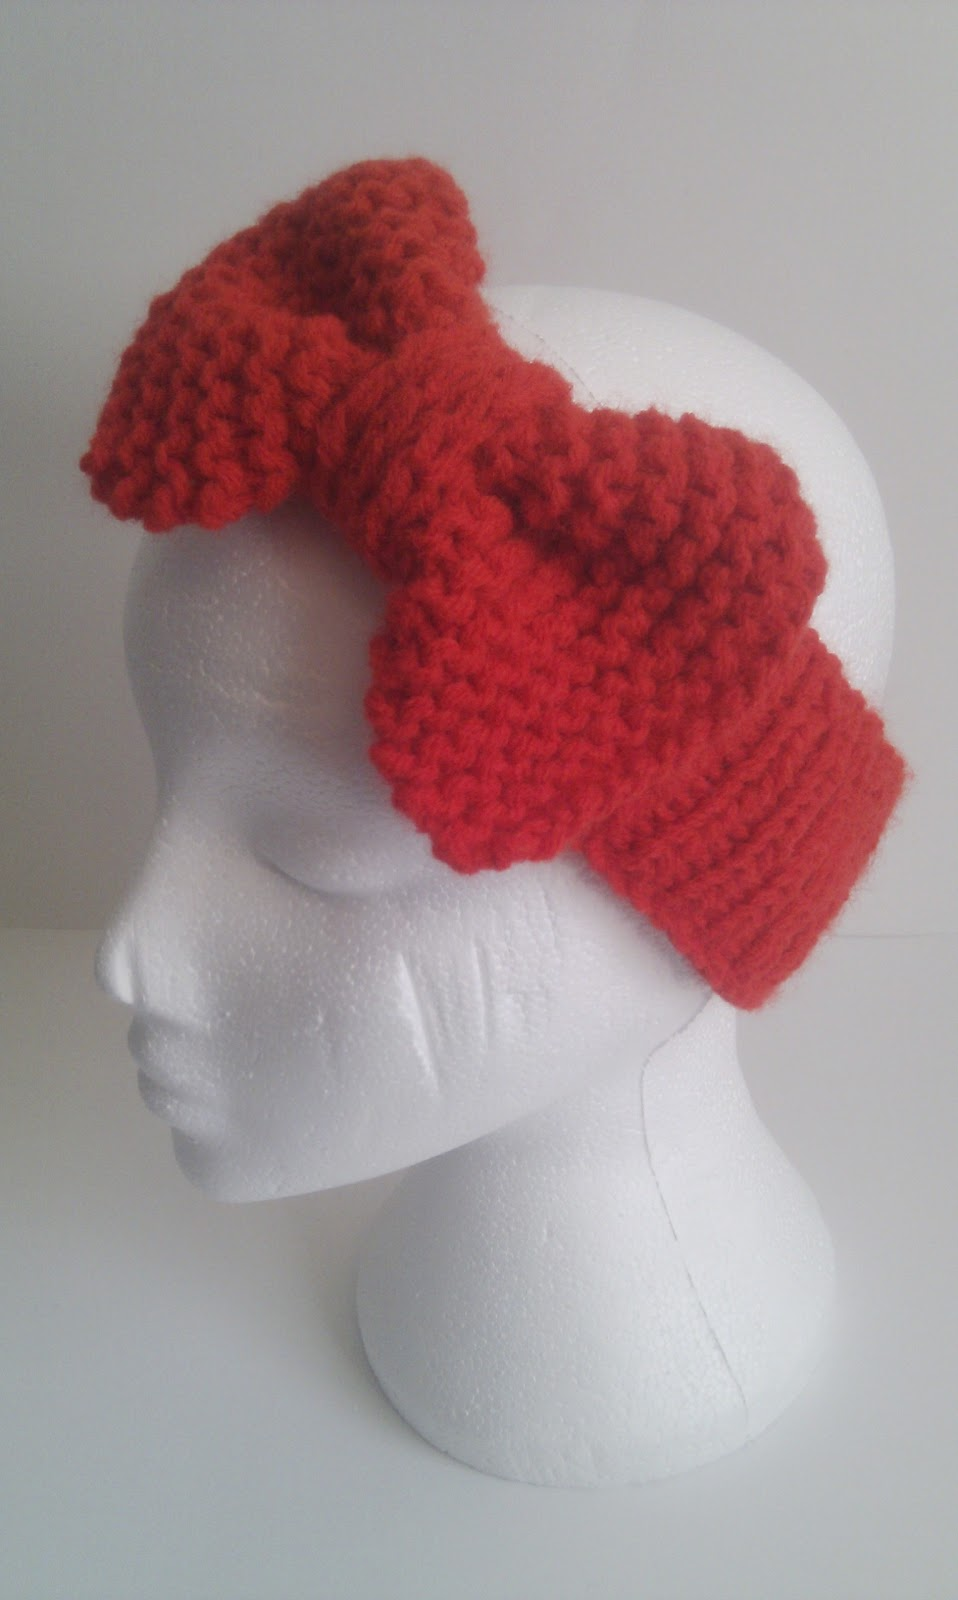 Knitted Headband Patterns Free : Musings of a knit-a-holic from Wales: Free Knitting Pattern: Beau Bow Headband